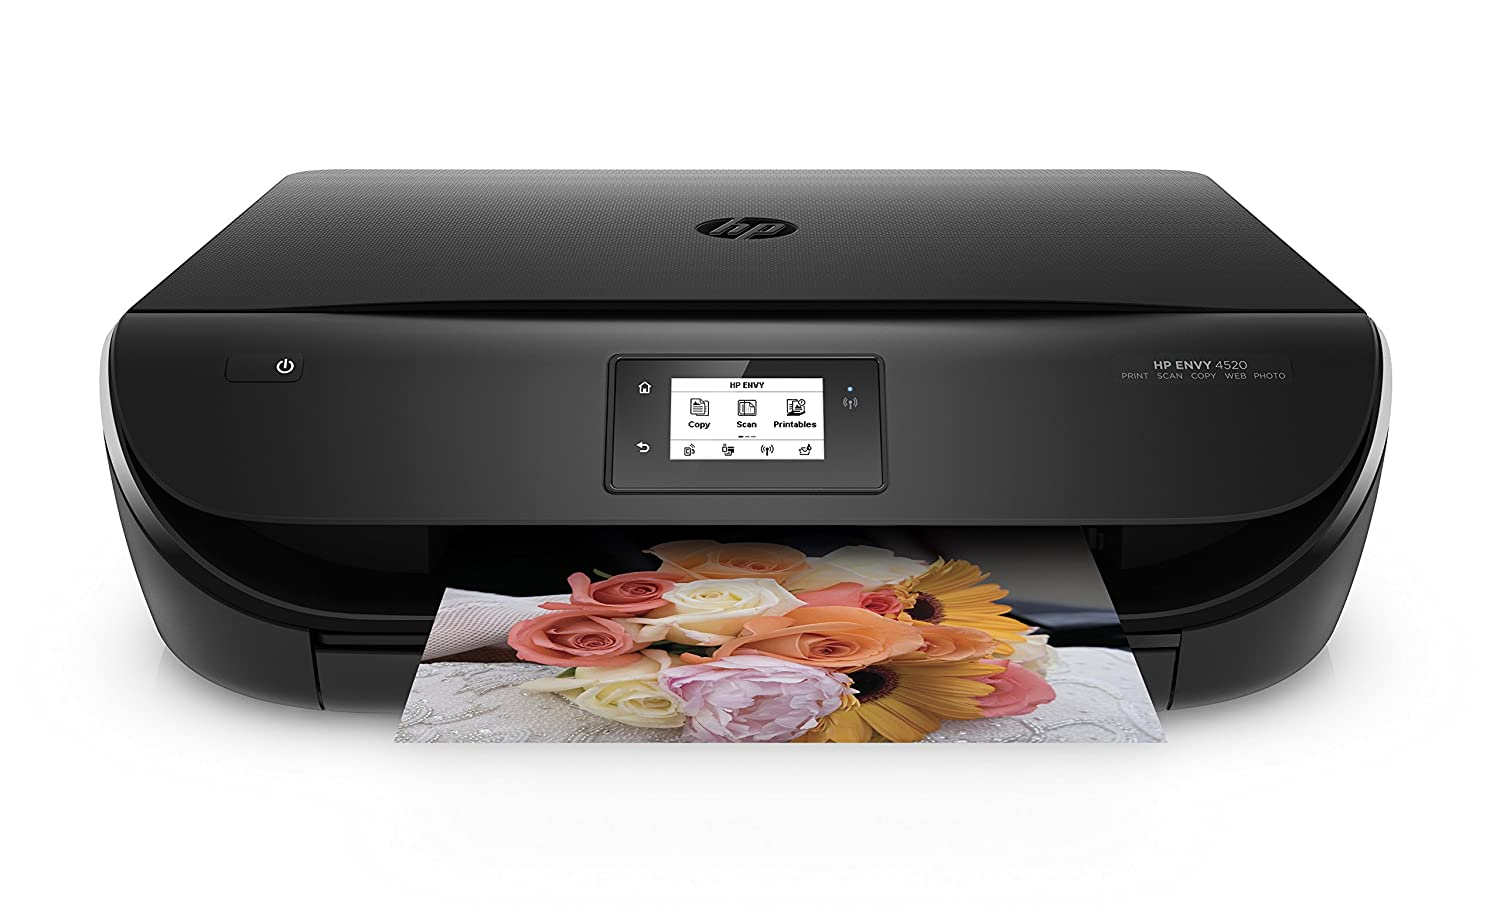 HP Envy 4520 Photo Printer